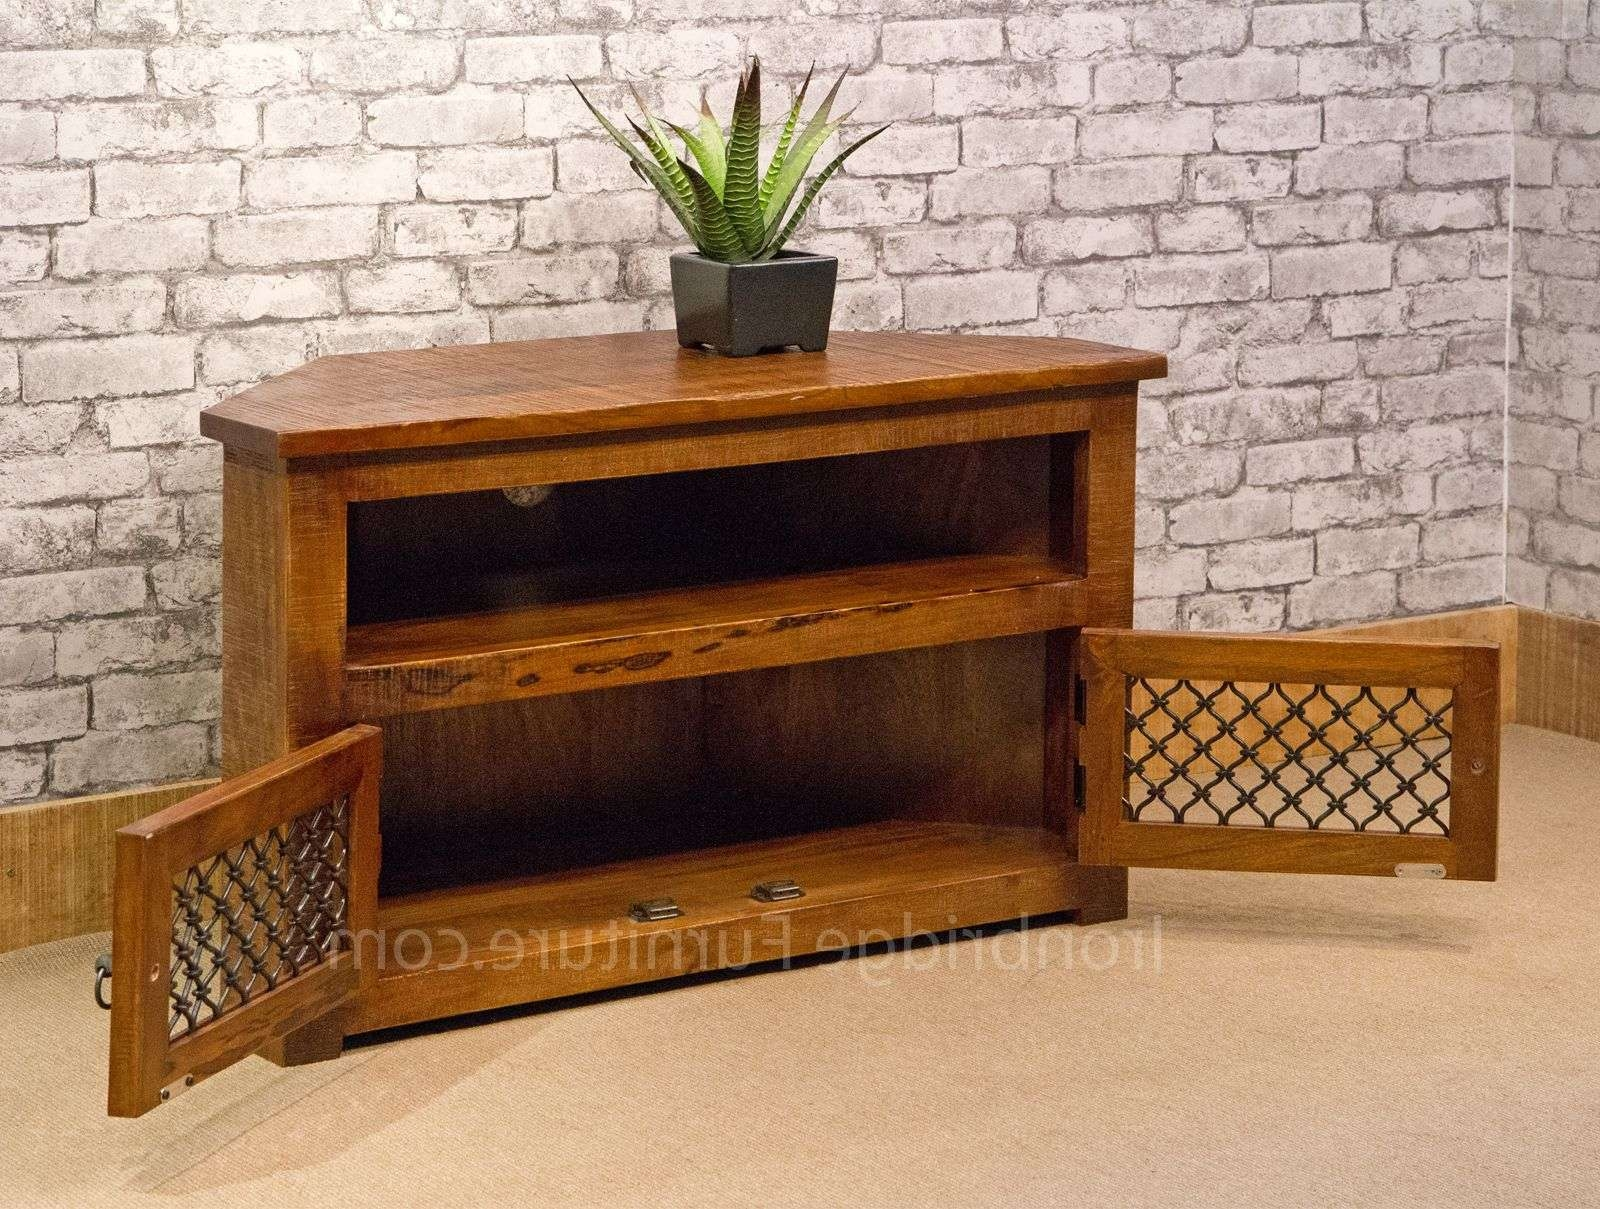 13 Jali Rustic Farm Corner Tv Stand 100Cm For 100Cm Tv Stands (Gallery 3 of 15)